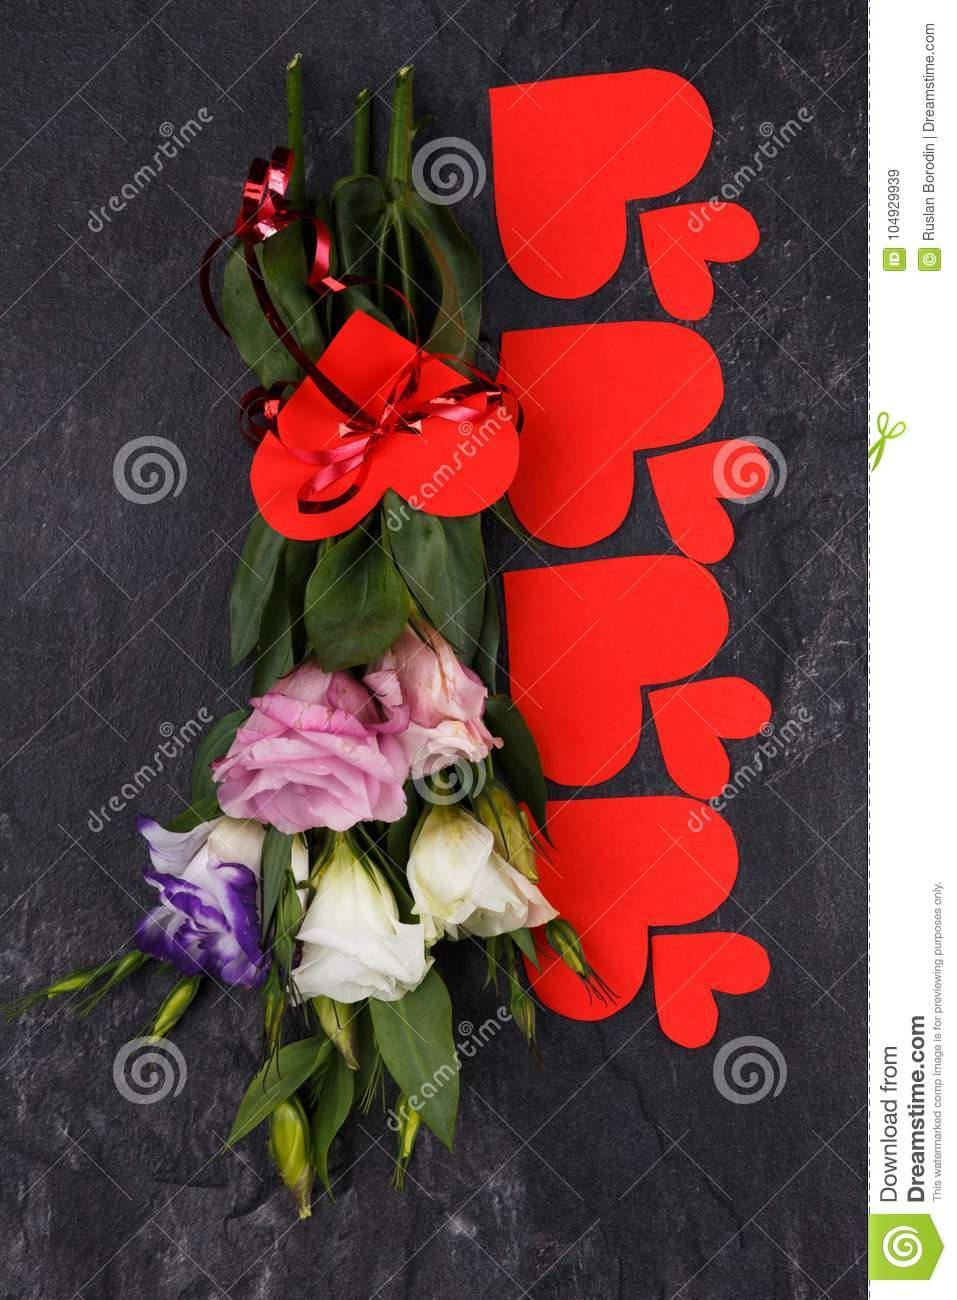 A Bouquet Of Japanese Roses Lies Upside Down On A Stone Background